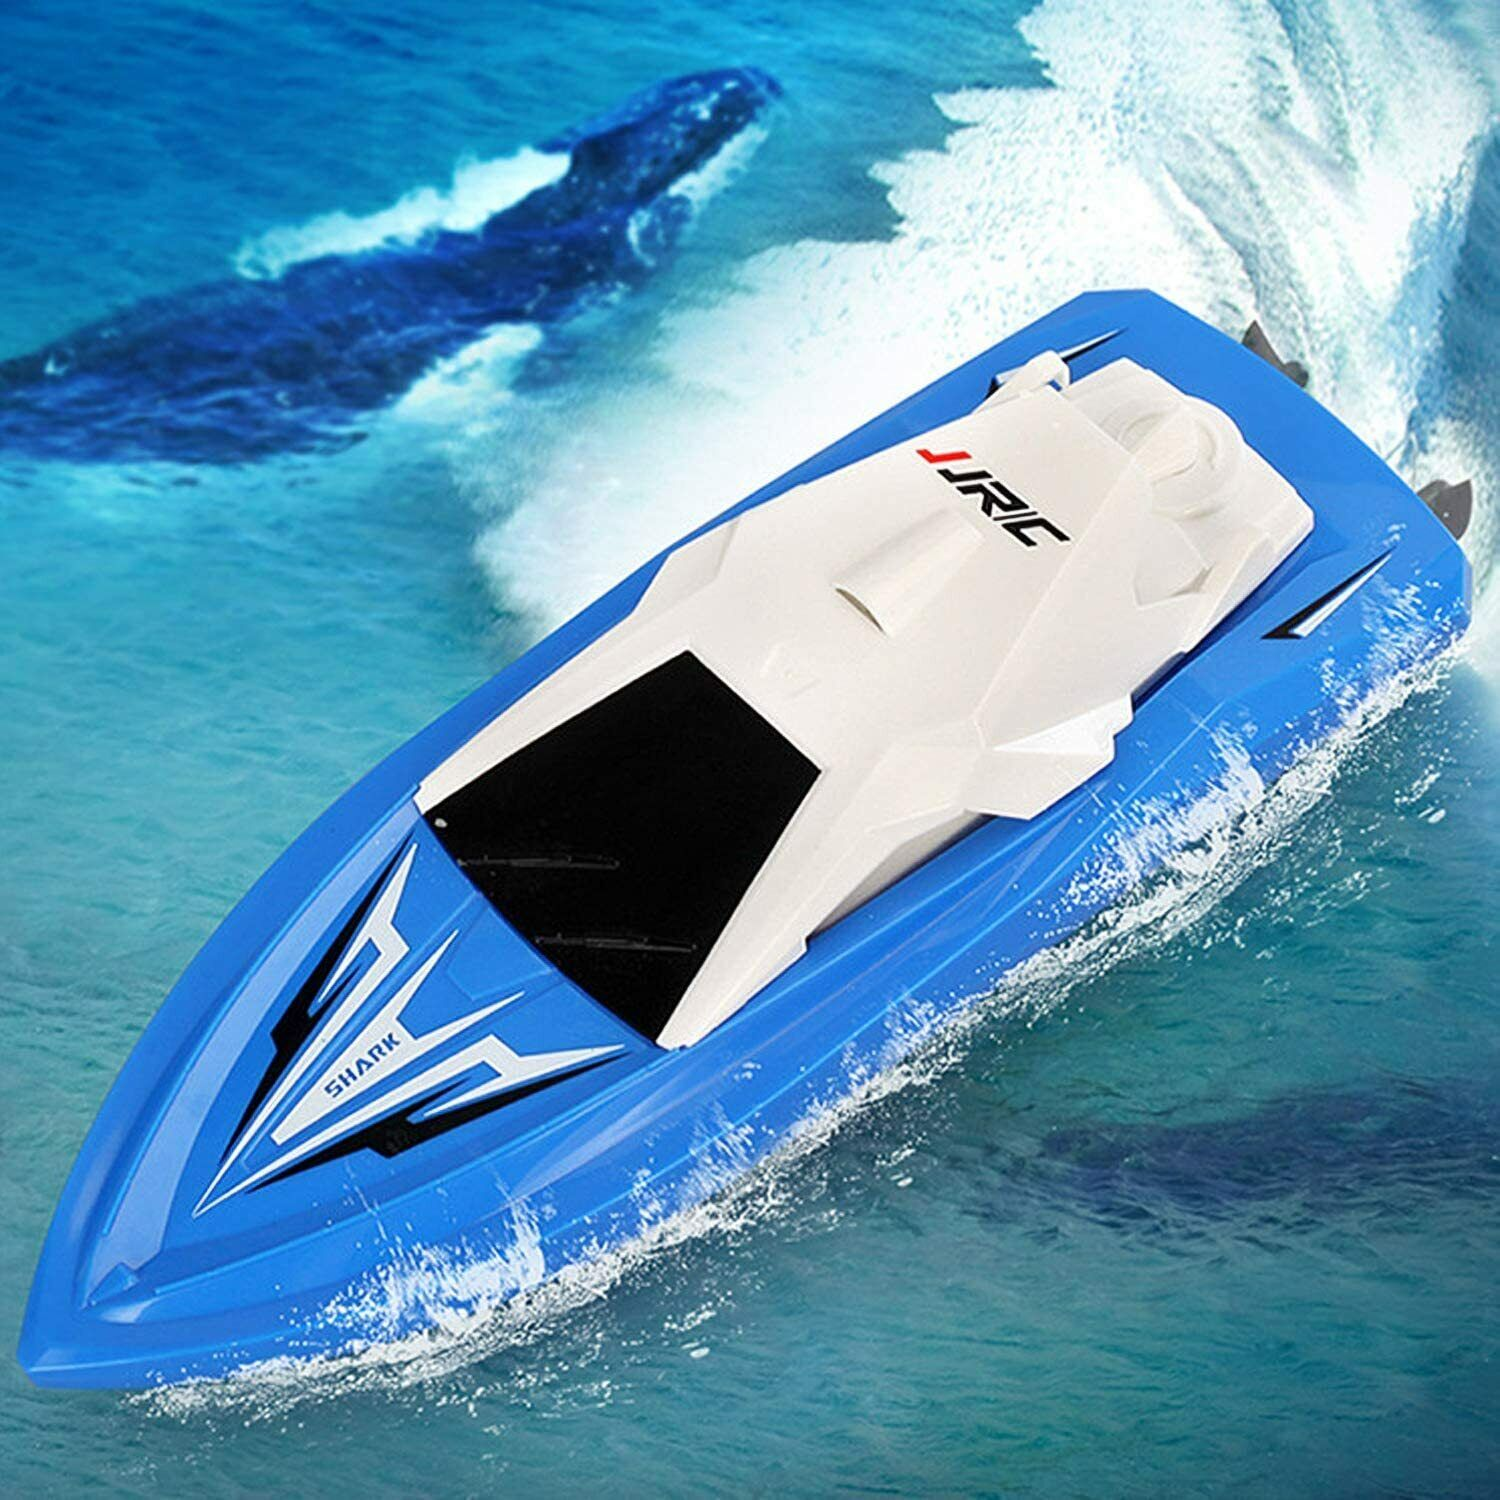 OTTF Racing Boat RC Boat for Kid Adults Innovative High Speed 4 Channel Remote Control Boat for Pool Lake Low Voltage Protection with High-Capacity Battery Gifts for Boys Girls